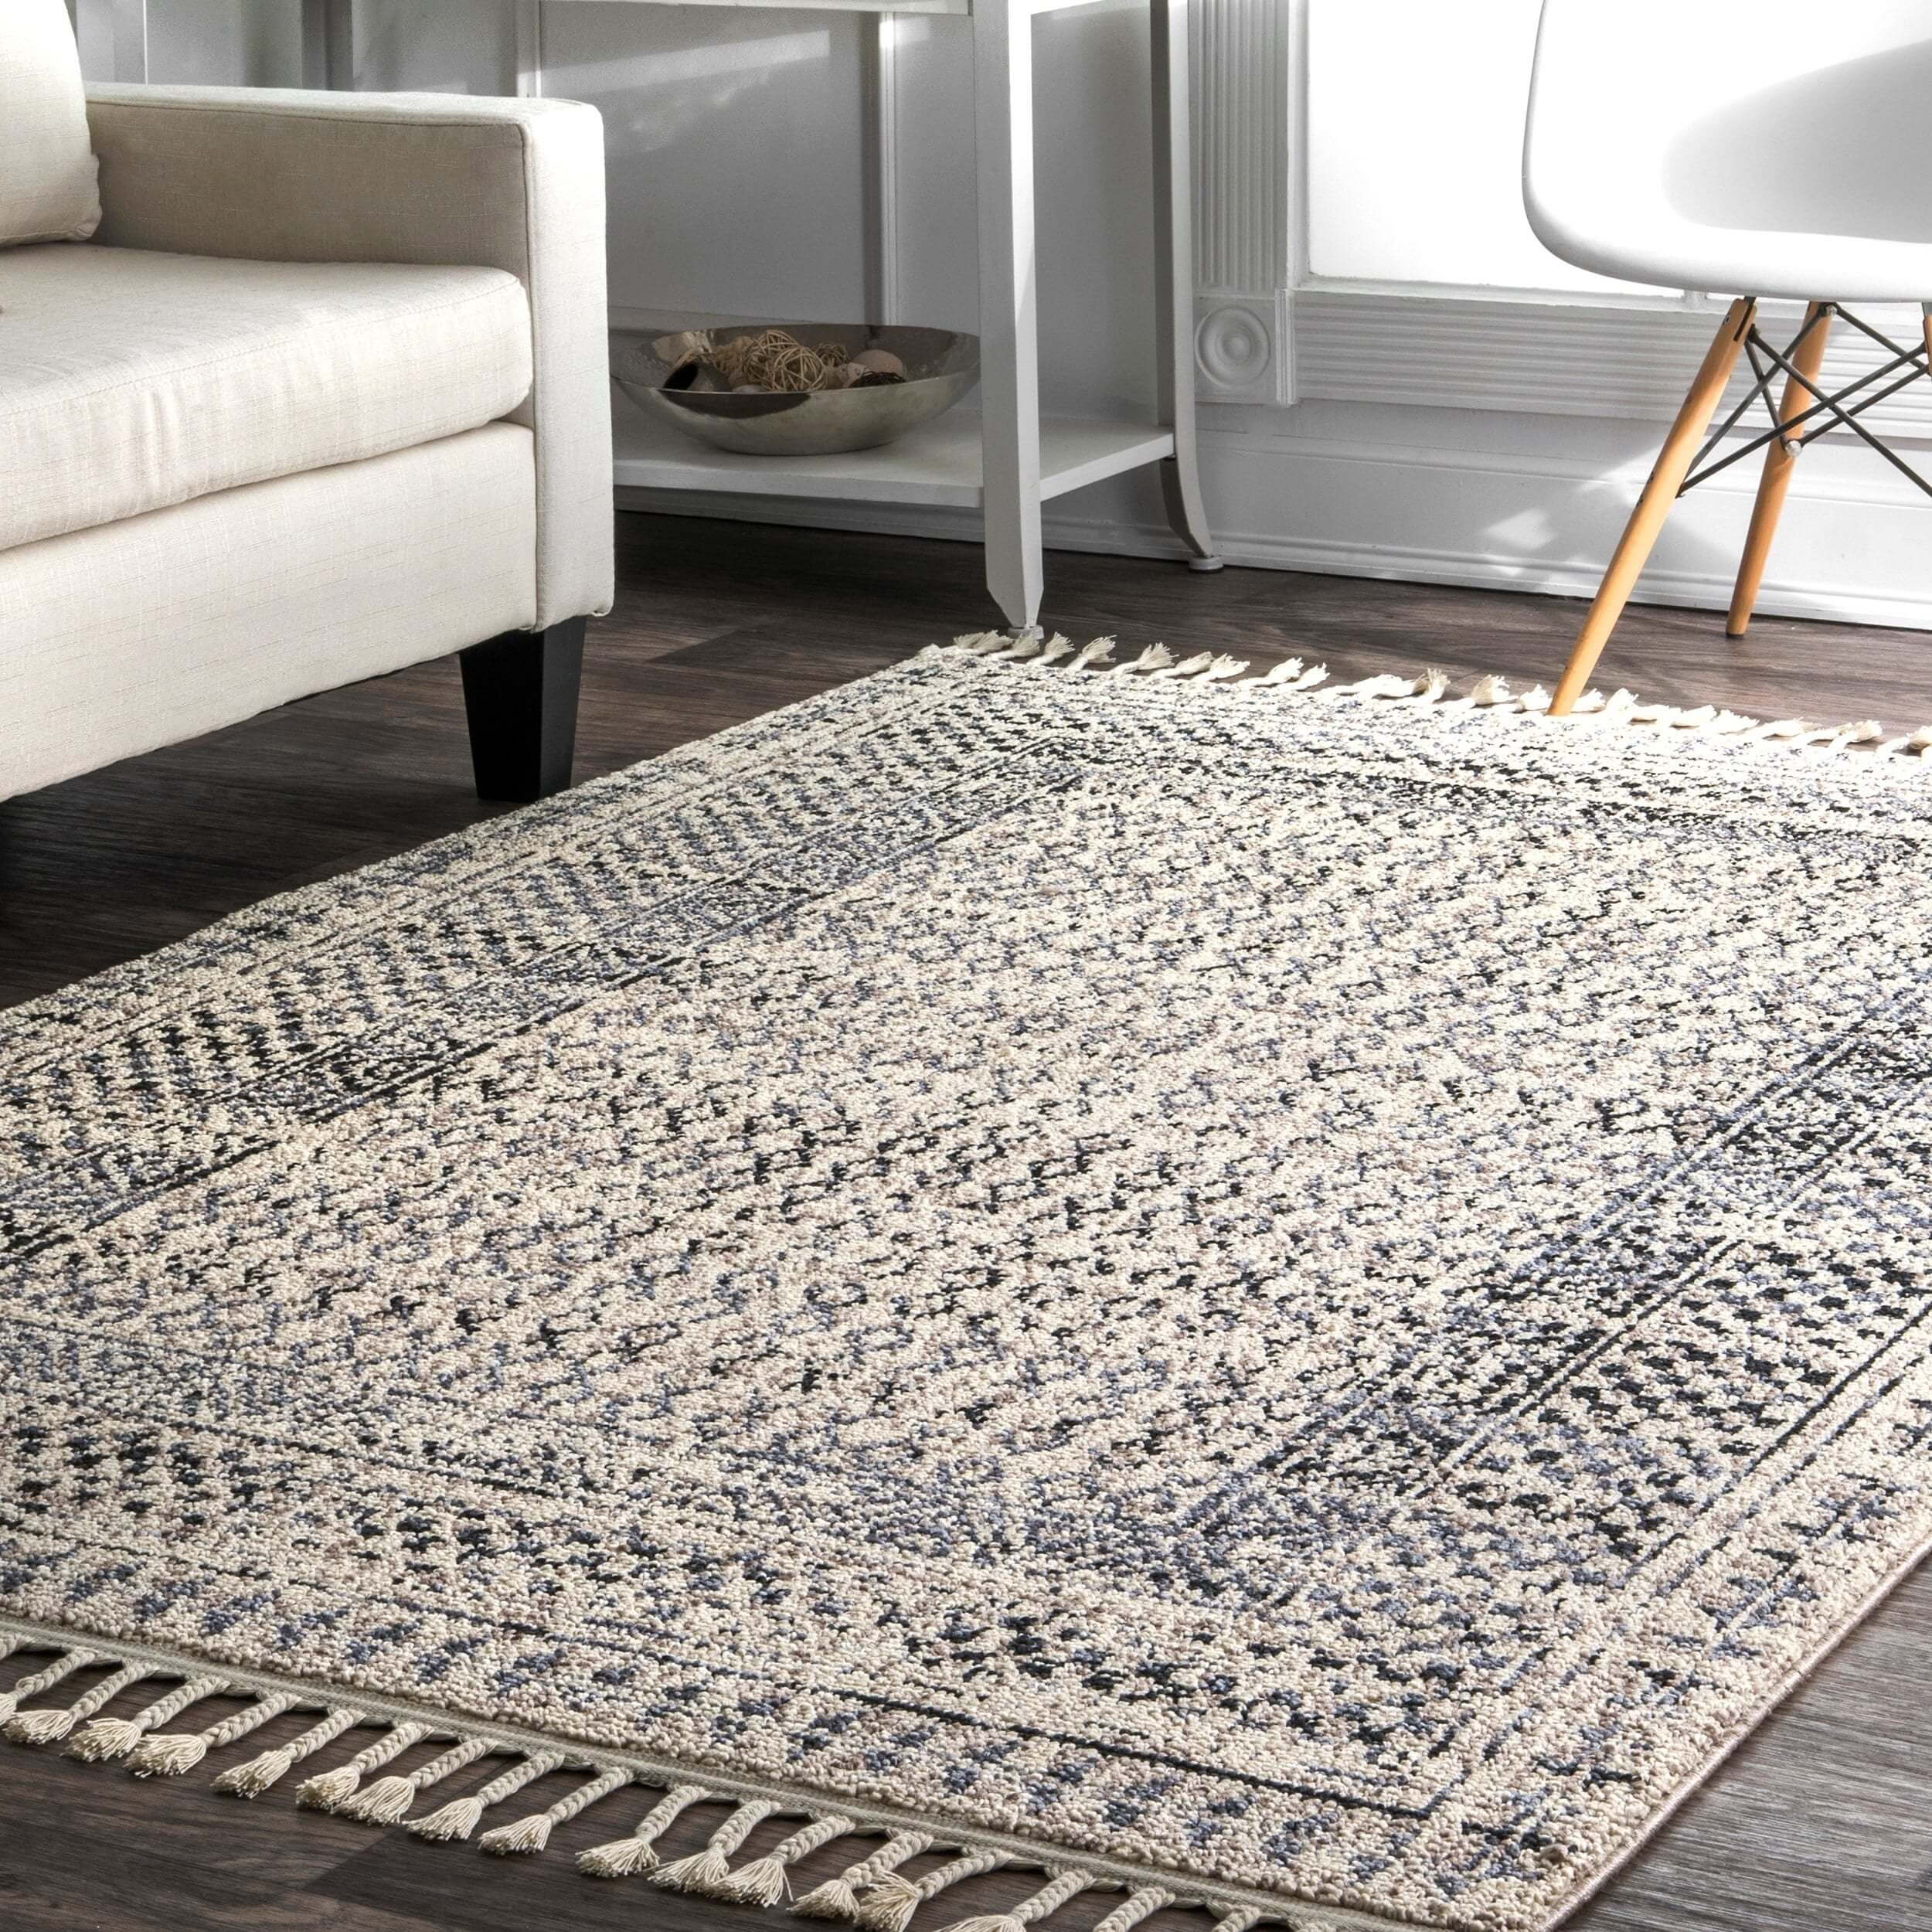 extra 15% off Select Area Rugs*